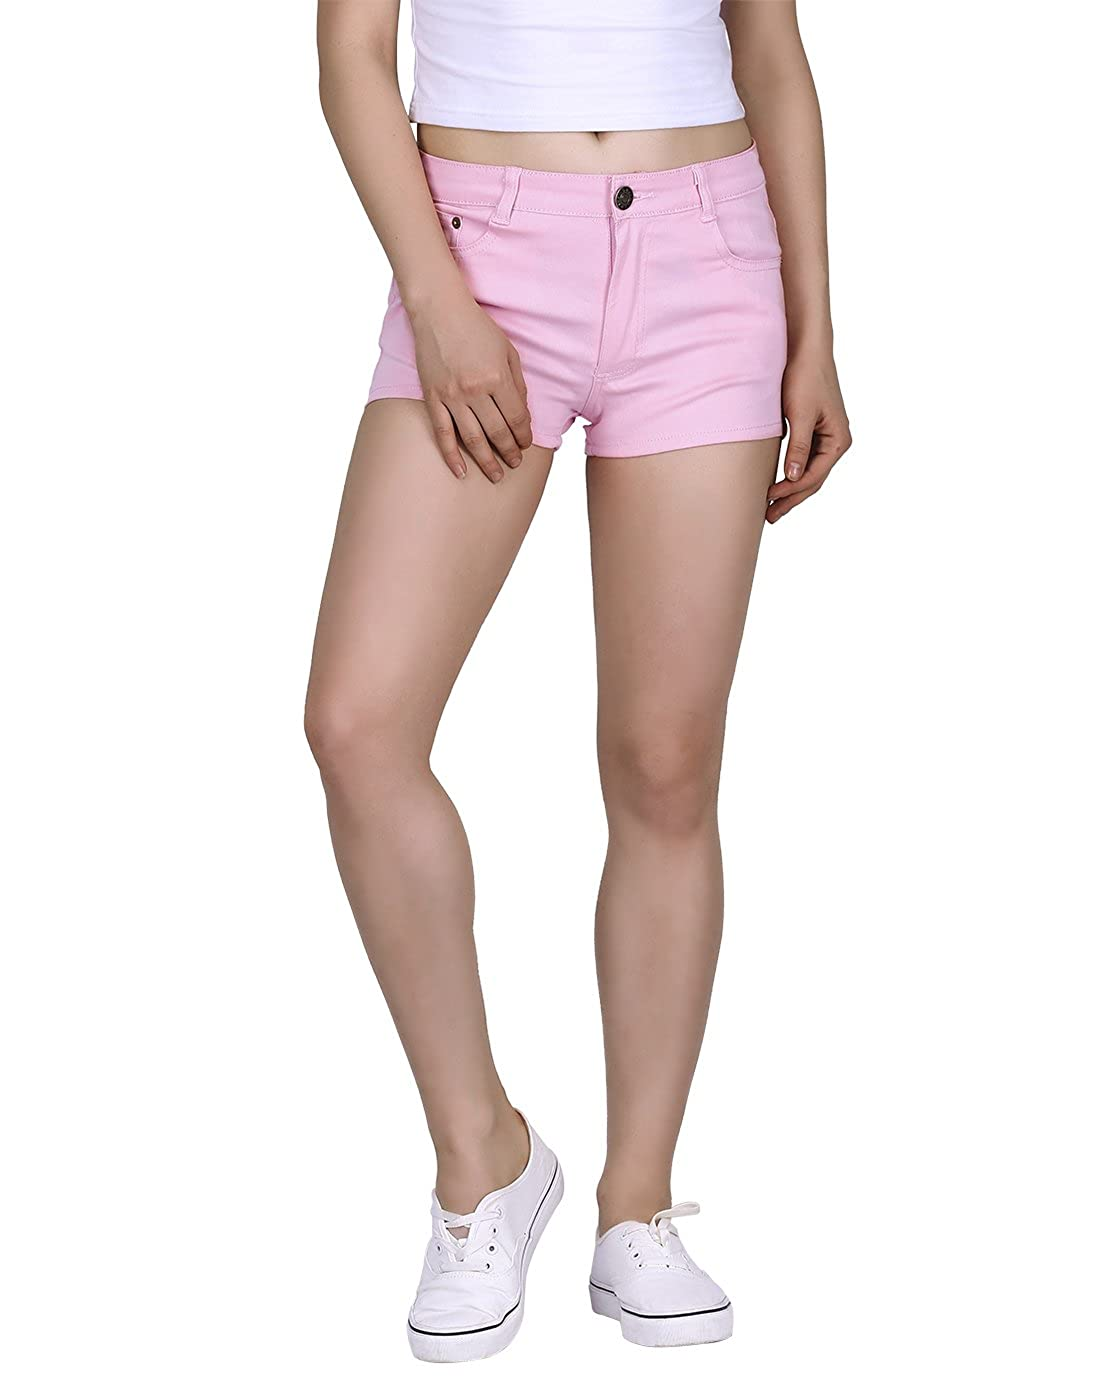 HDE Womens Solid Color Ultra Stretch Fitted Low Rise Moleton Denim Booty Shorts